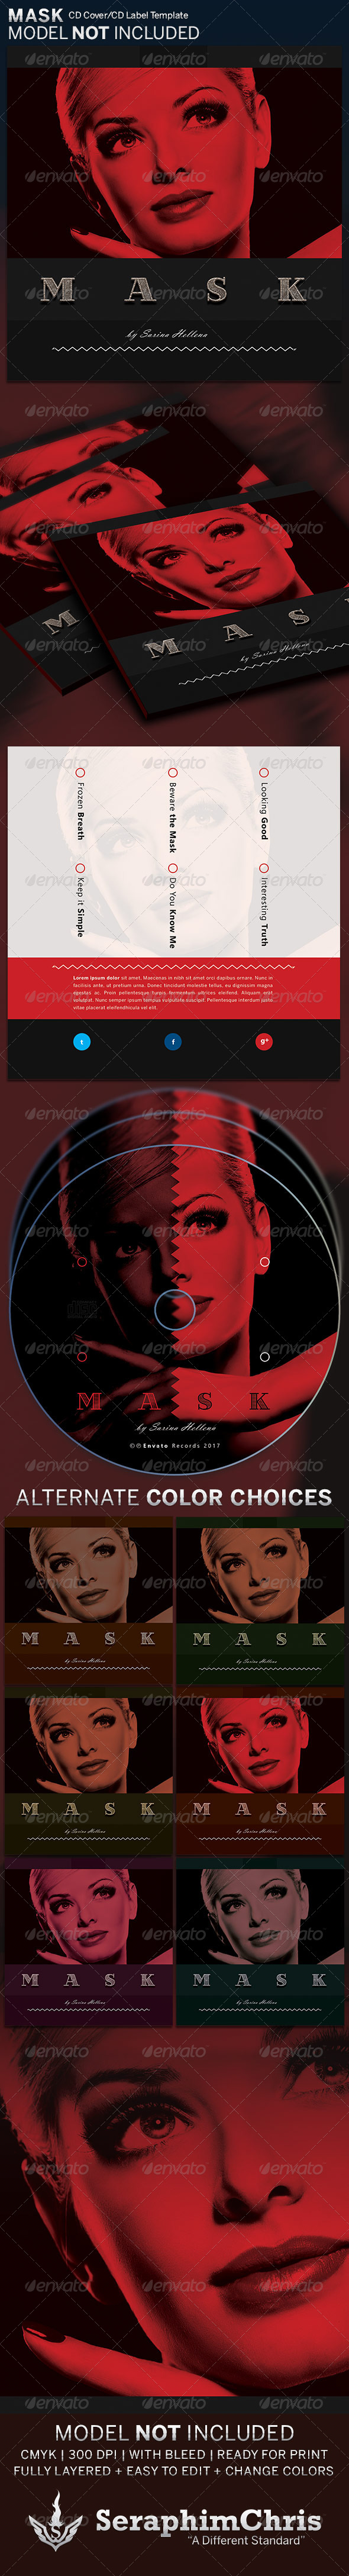 Mask CD Cover Artwork Template